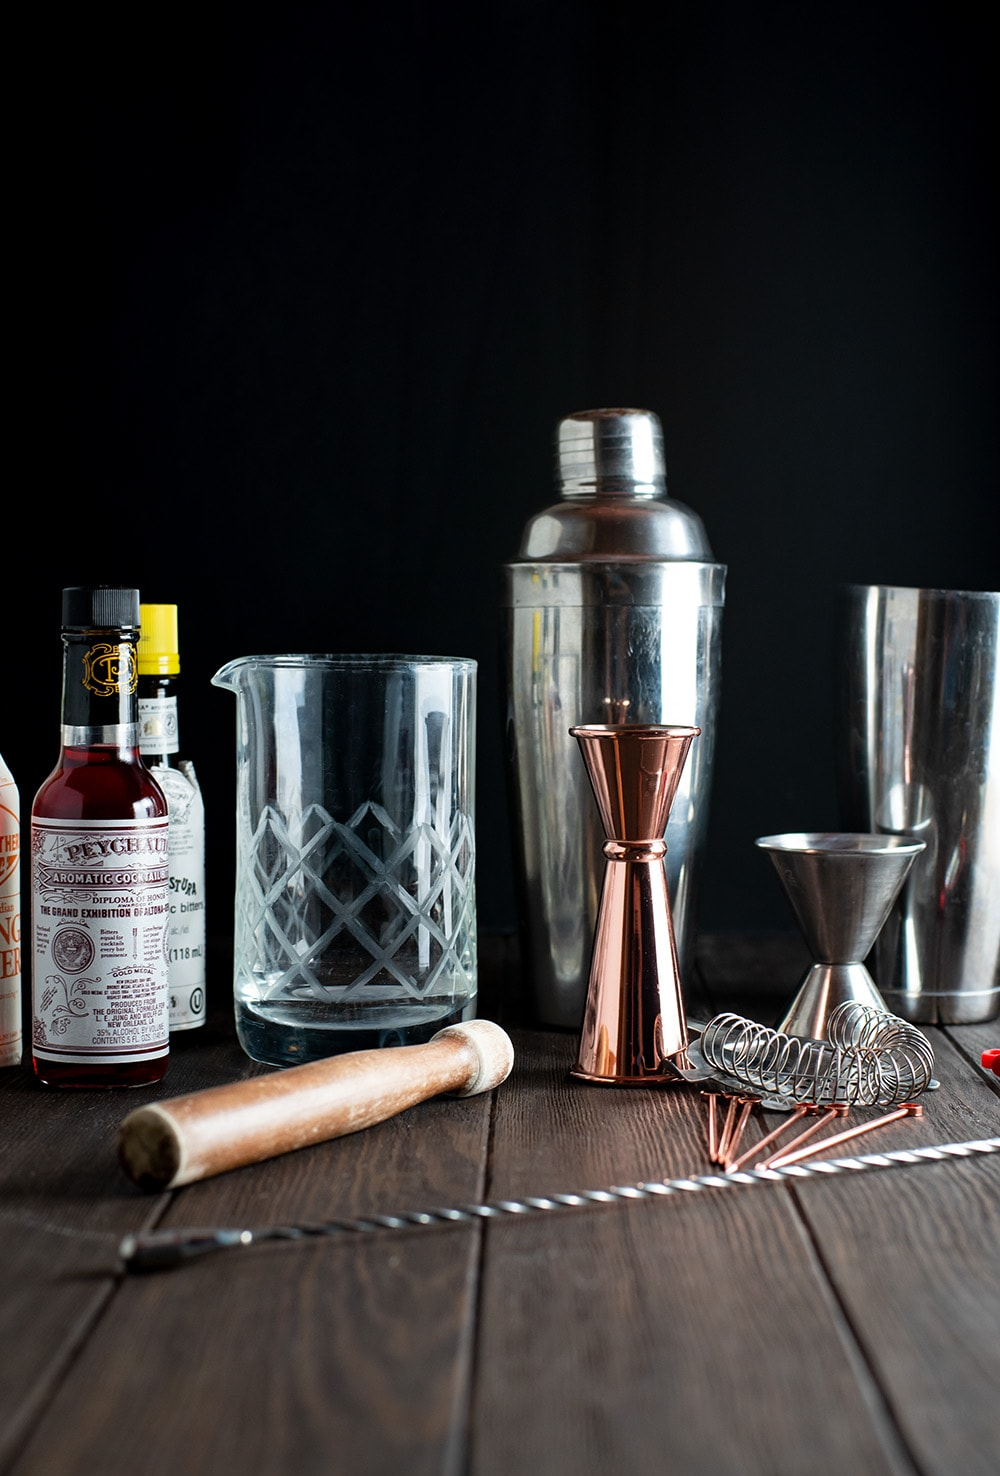 6 tips for how to up your bartender skills and make better craft cocktails right at home, plus the tools you'll need to succeed.